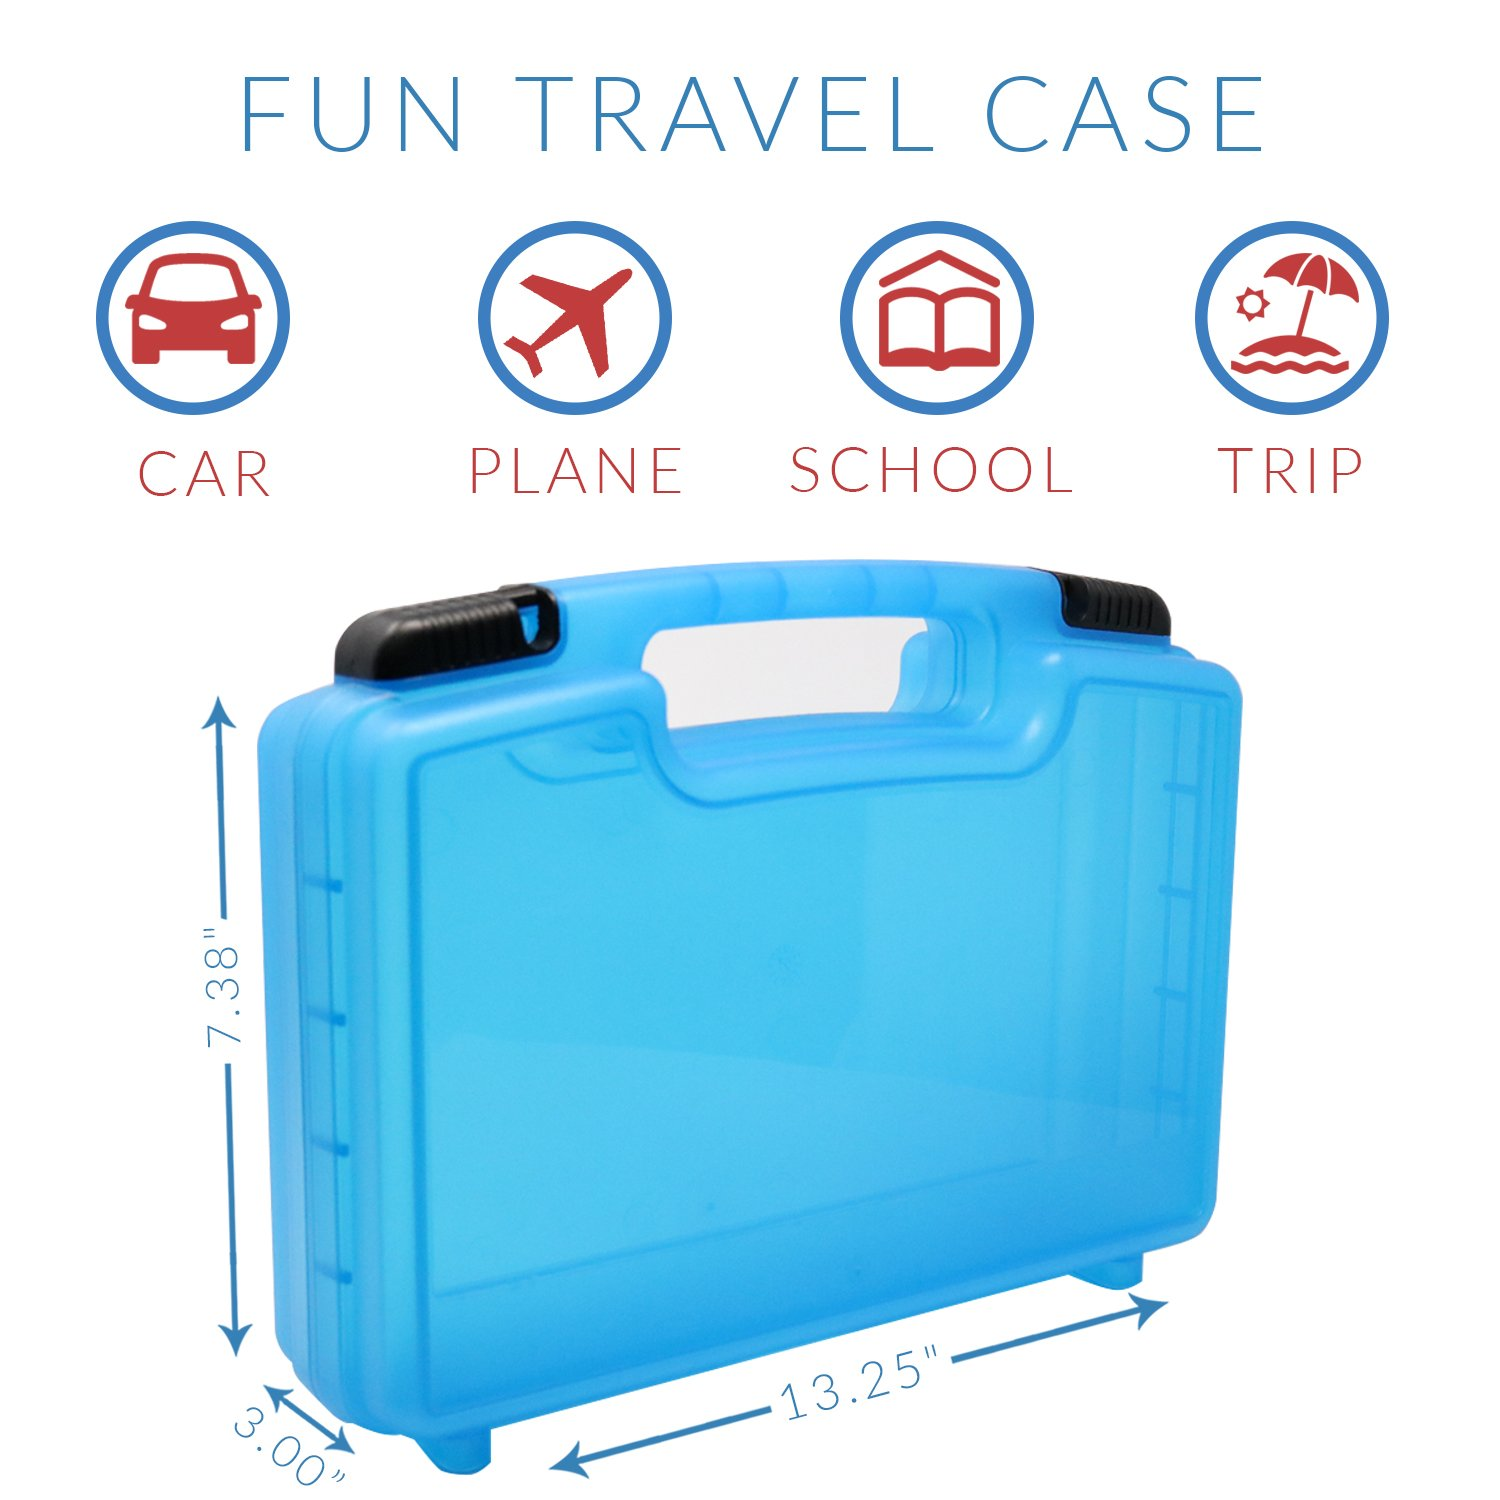 Figurines and Accessories Organizer and Carrying Case Life Made Better Daniel Tiger Case Blue